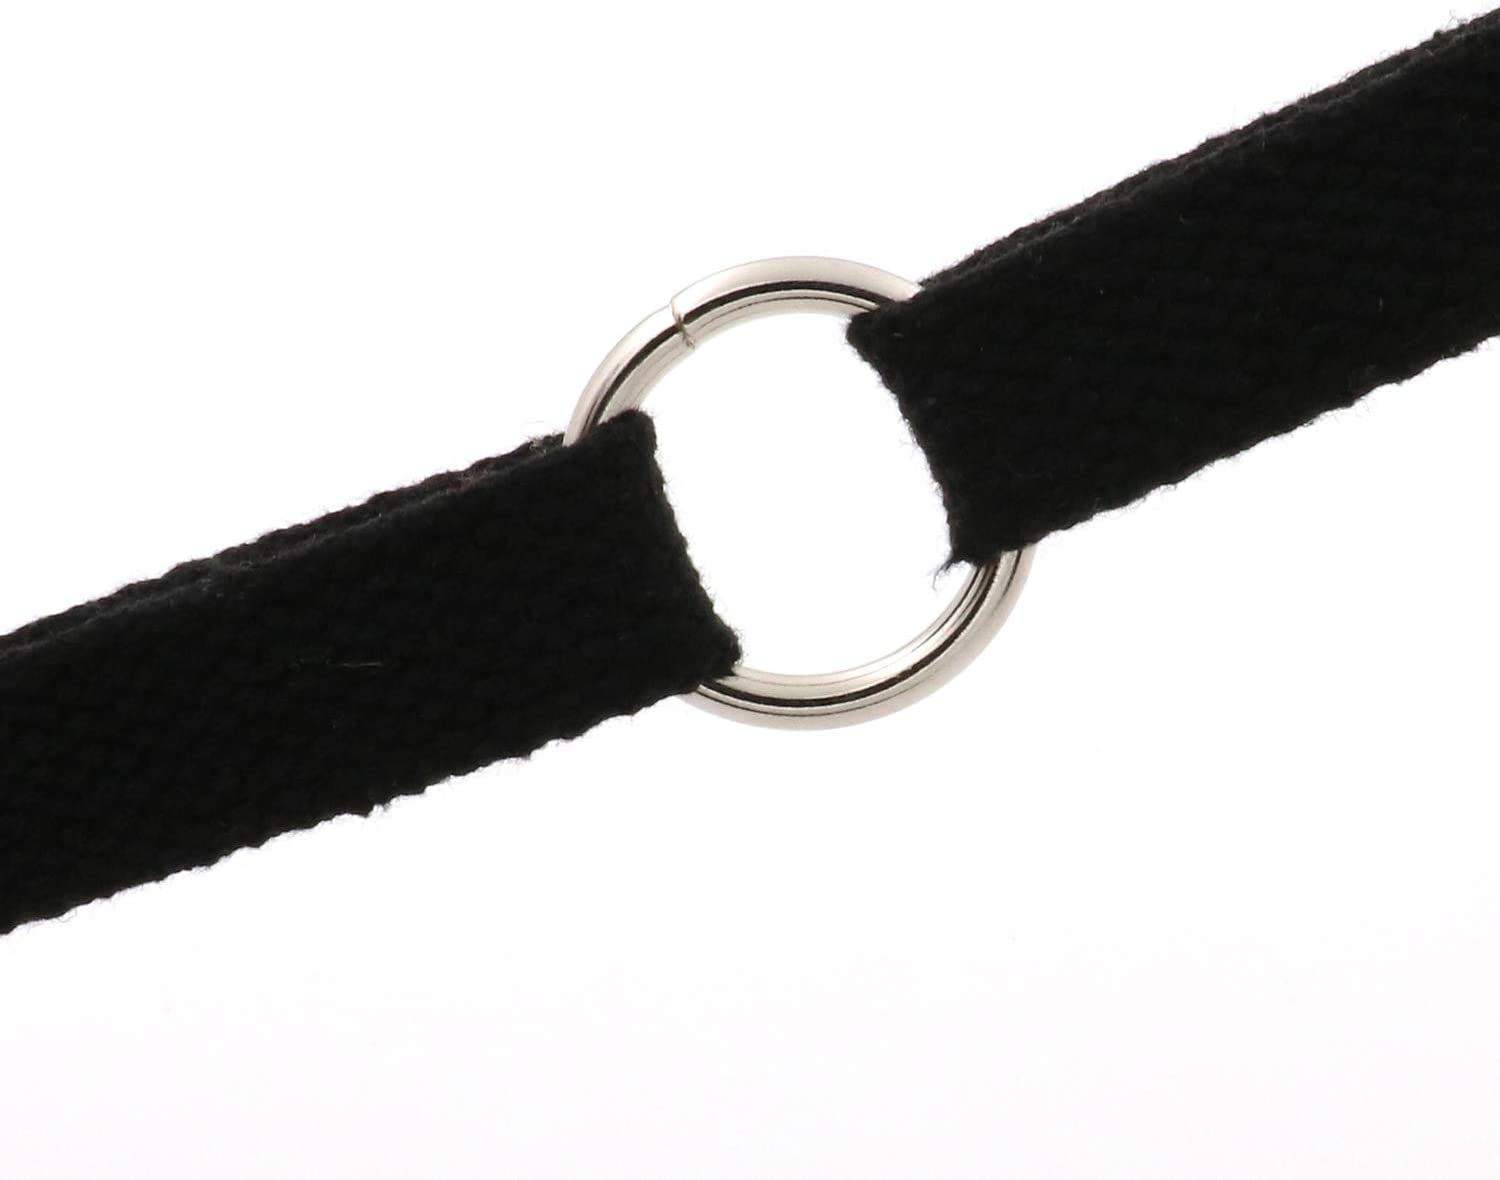 Shoes and Belt Straps Collars BIKICOCO 1 Metal O Ring Purse Connector Round Loop Buckles Non Welded for Bags Pack of 10 Silver